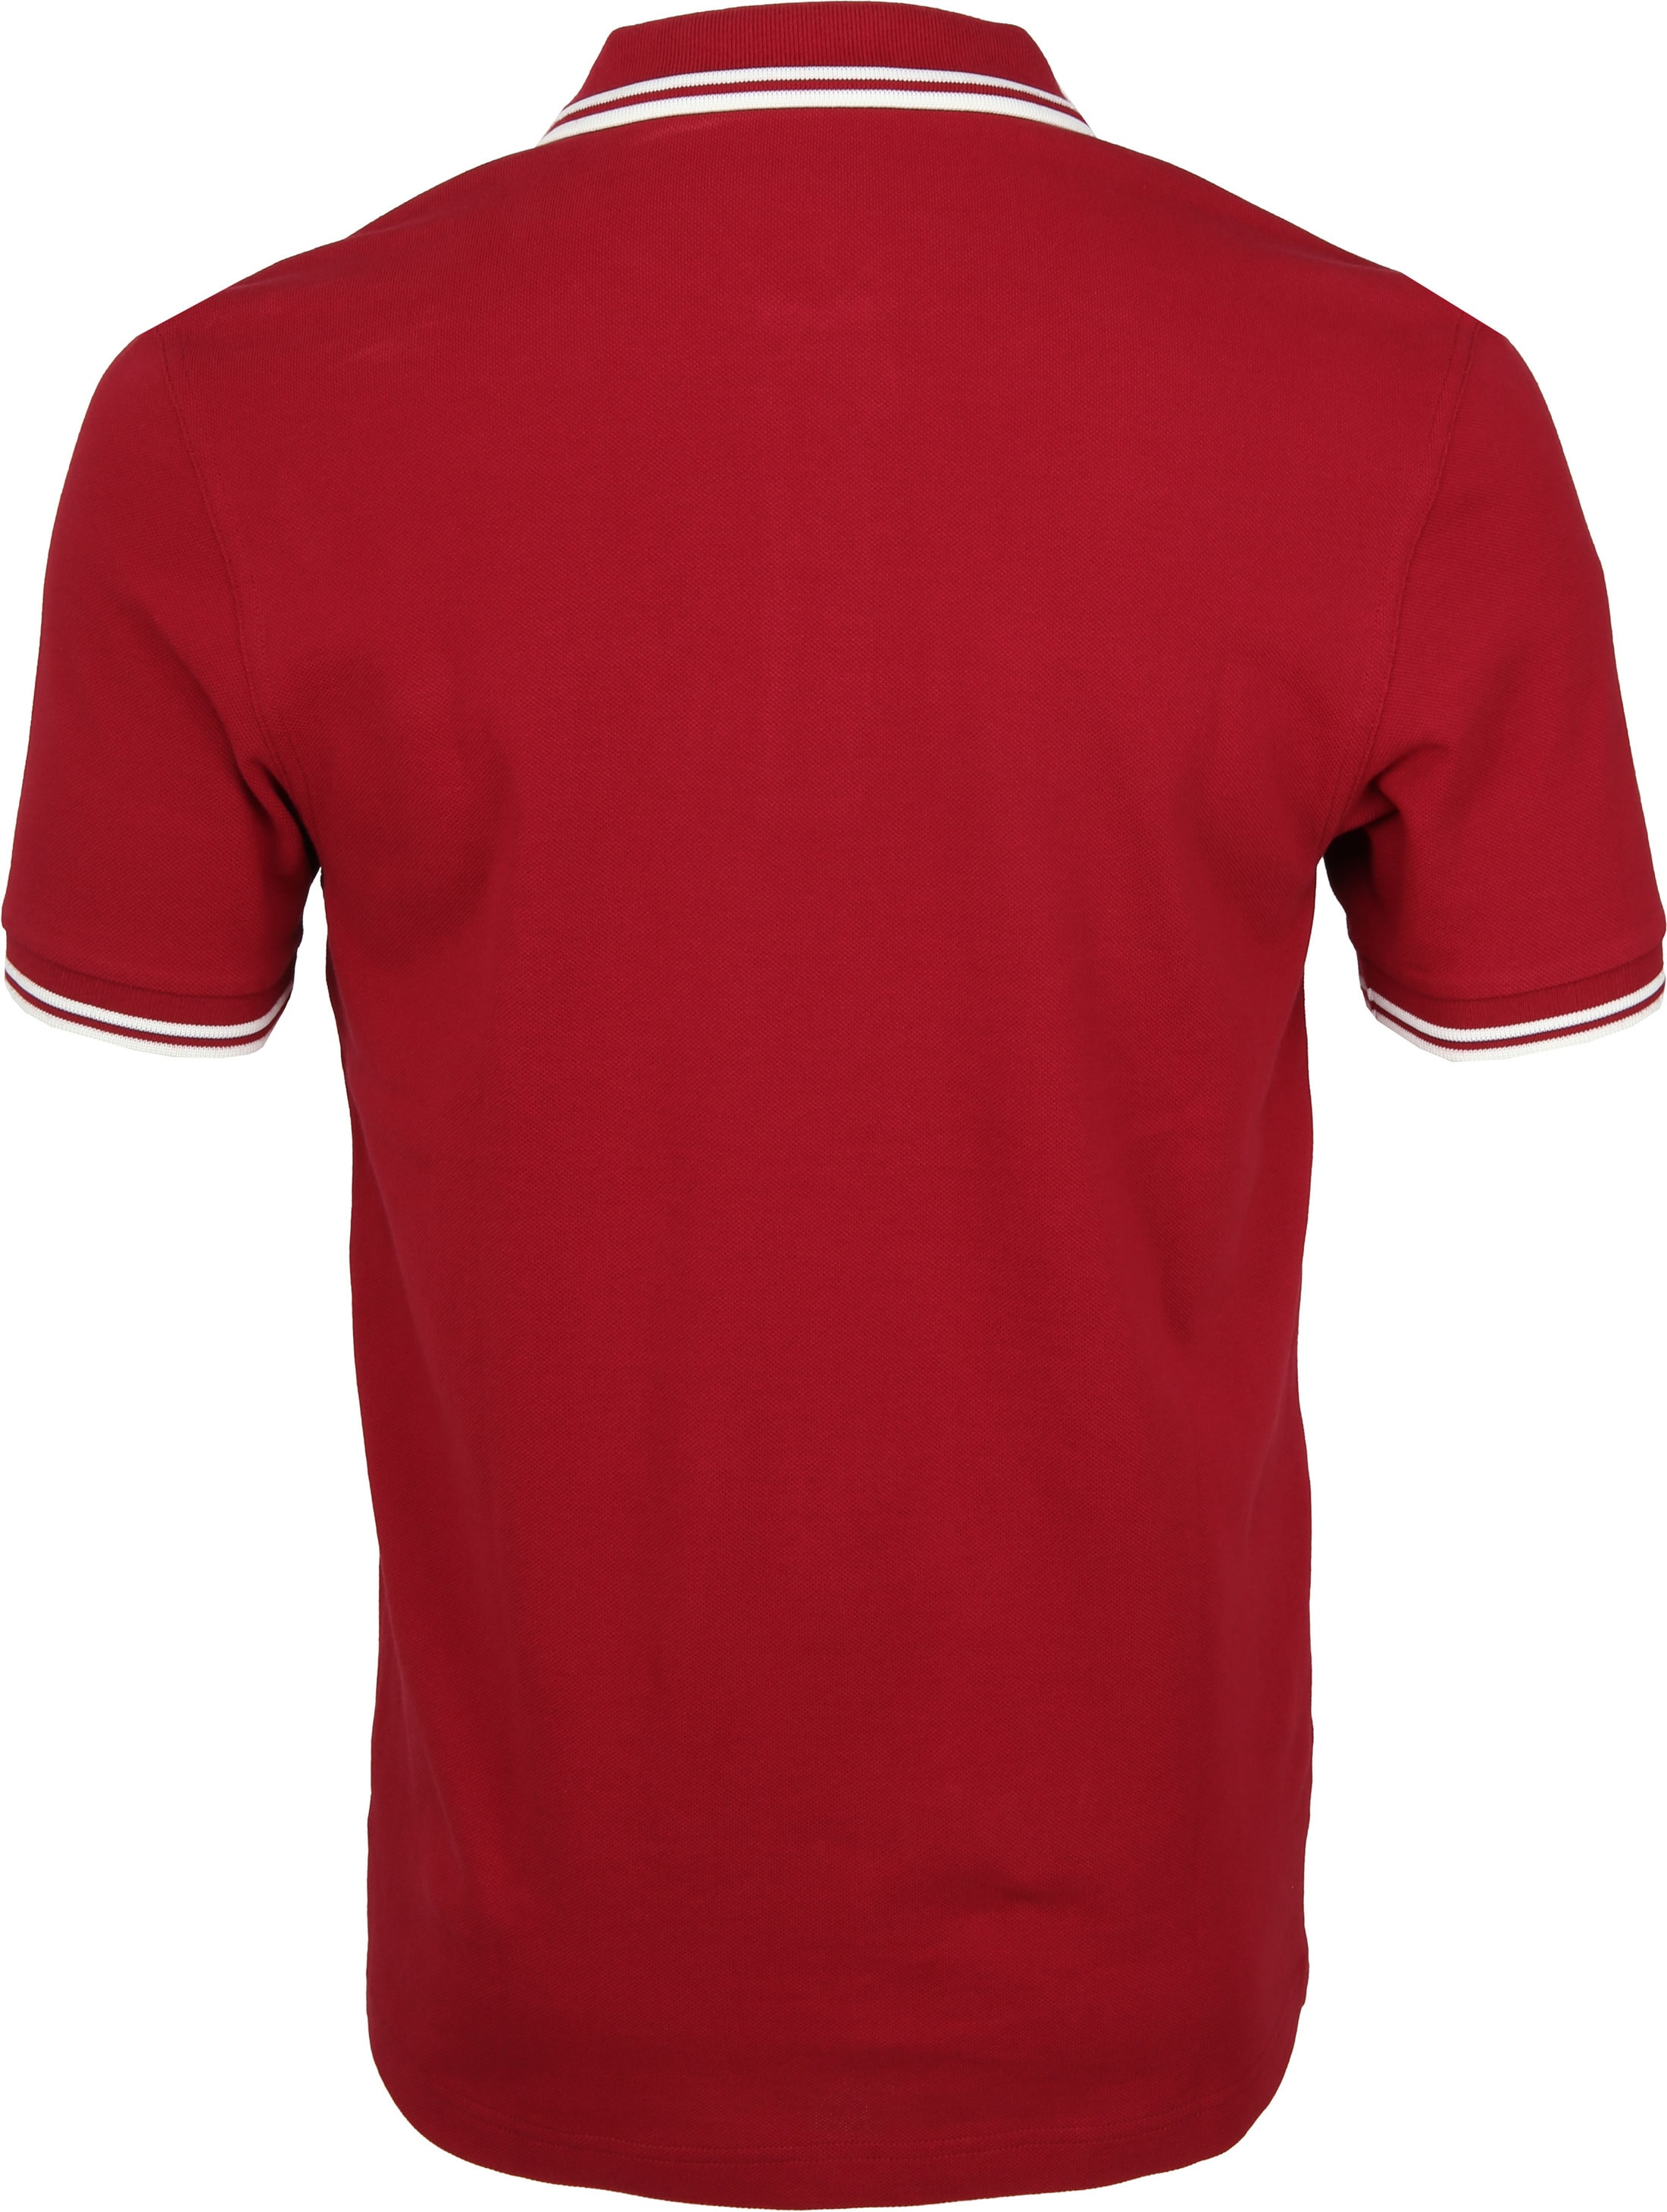 Fred Perry Poloshirt Red D75 foto 2